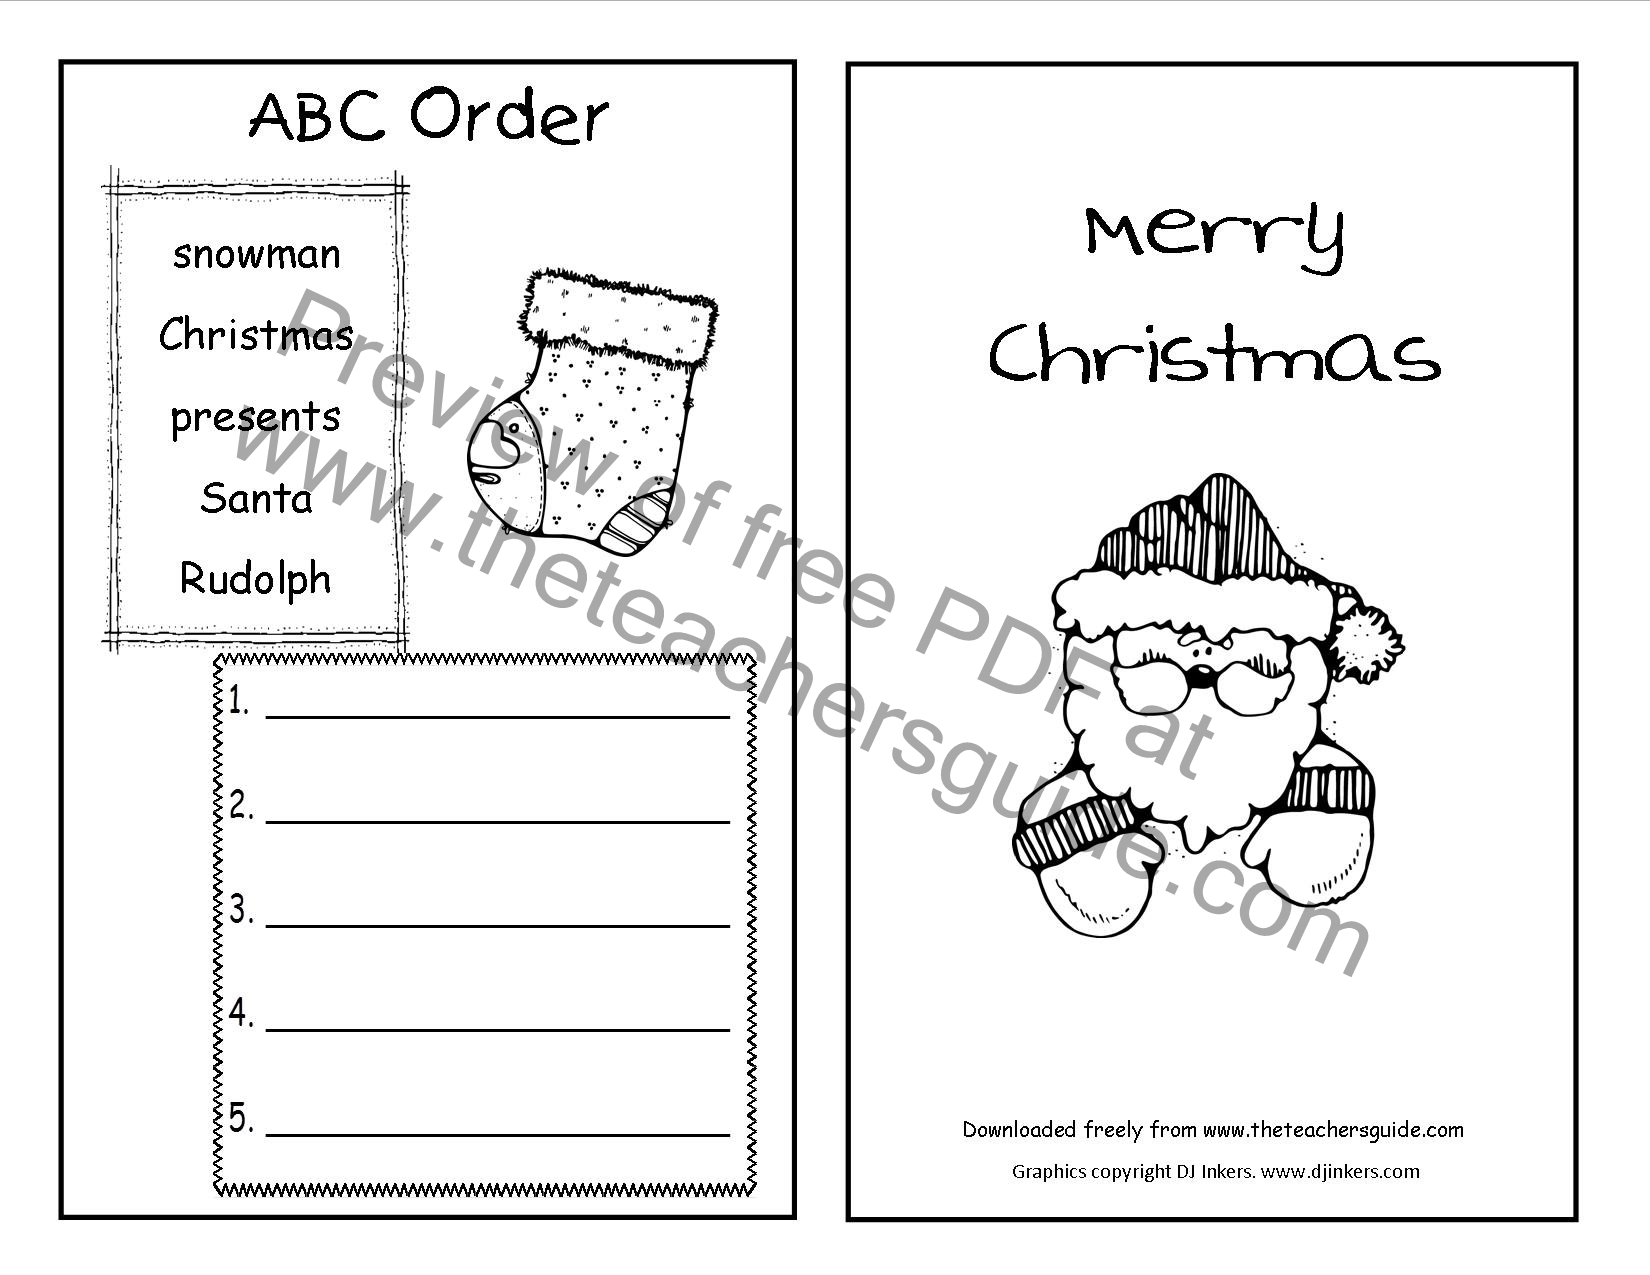 Christmas Printouts From The Teacher Guide Free Order